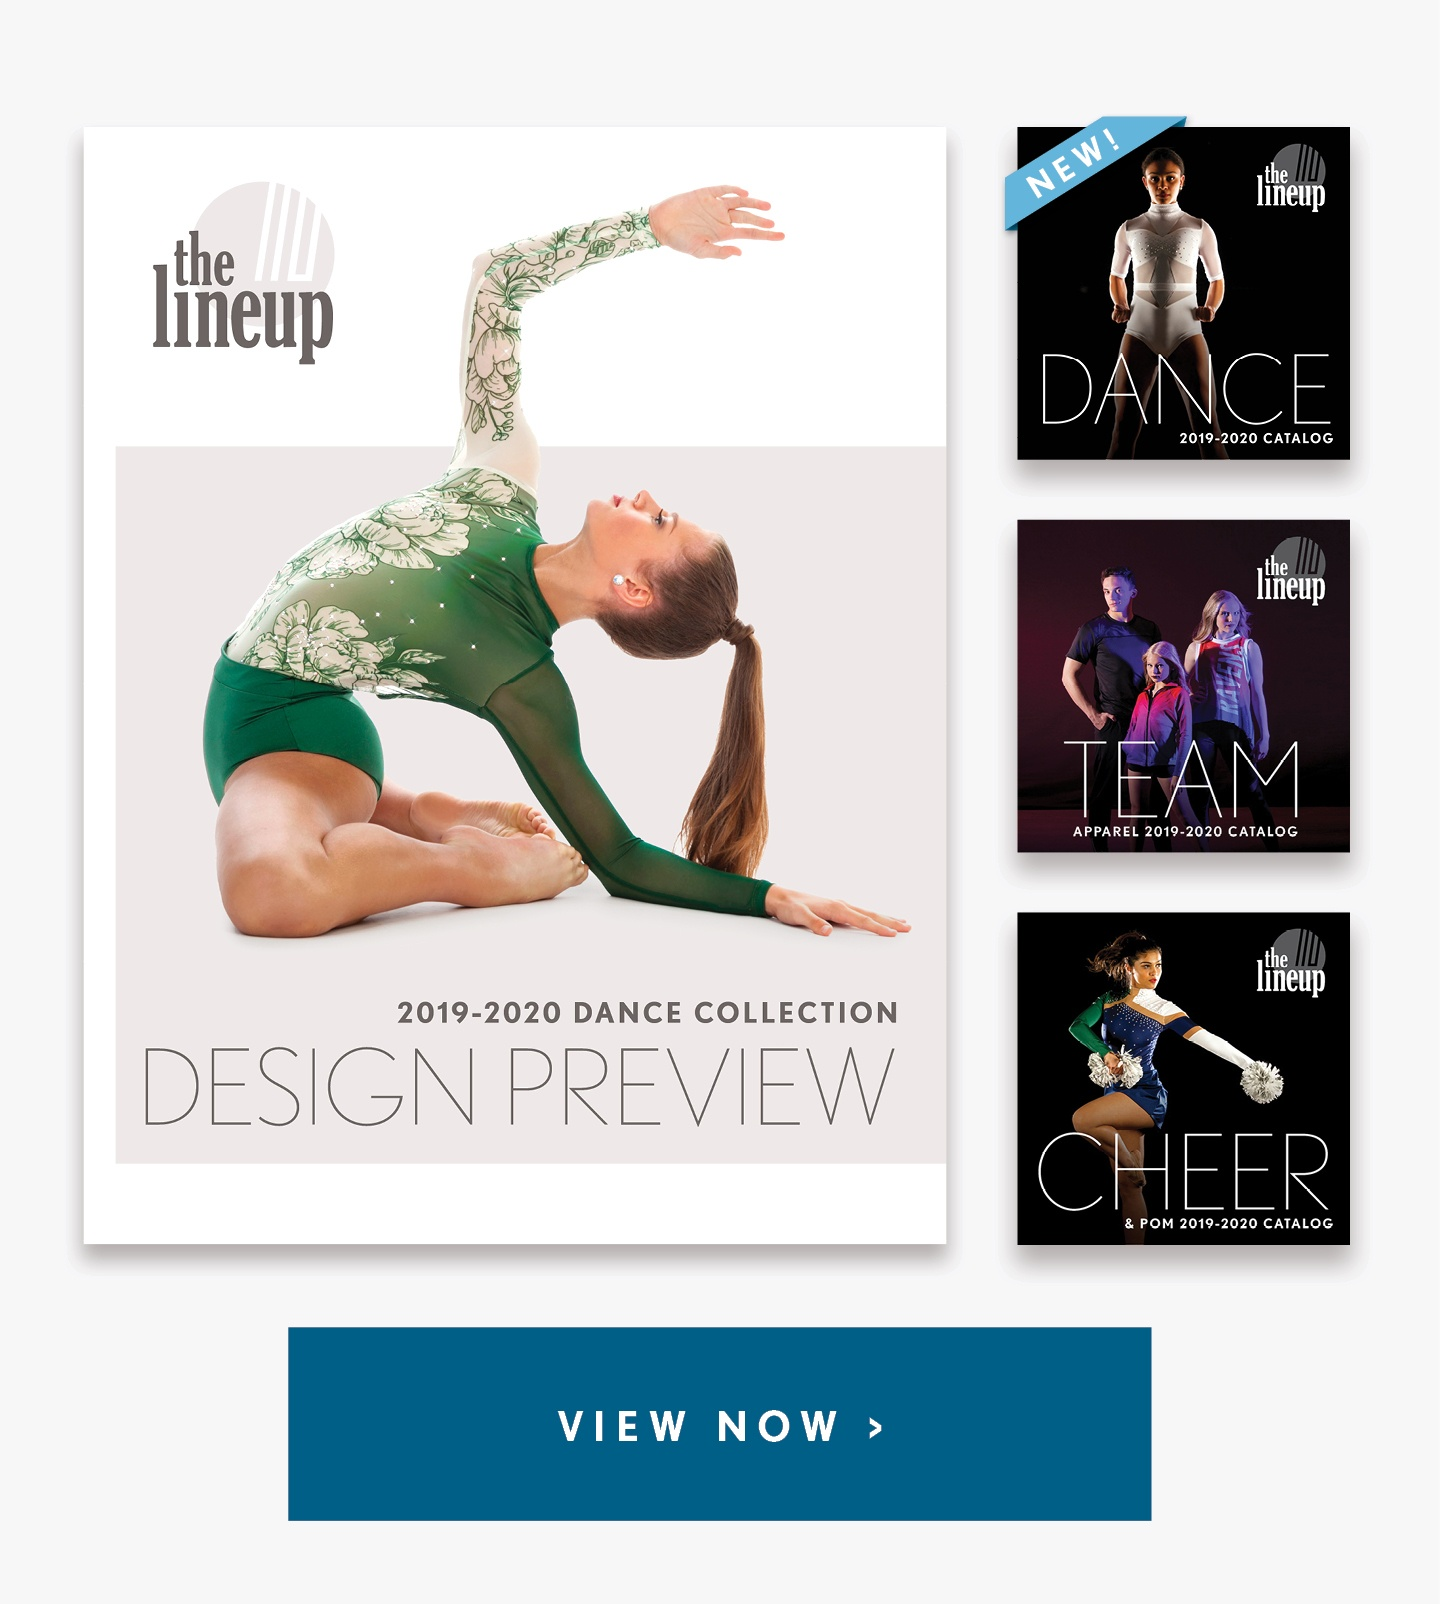 View all 2019-2020 catalogs